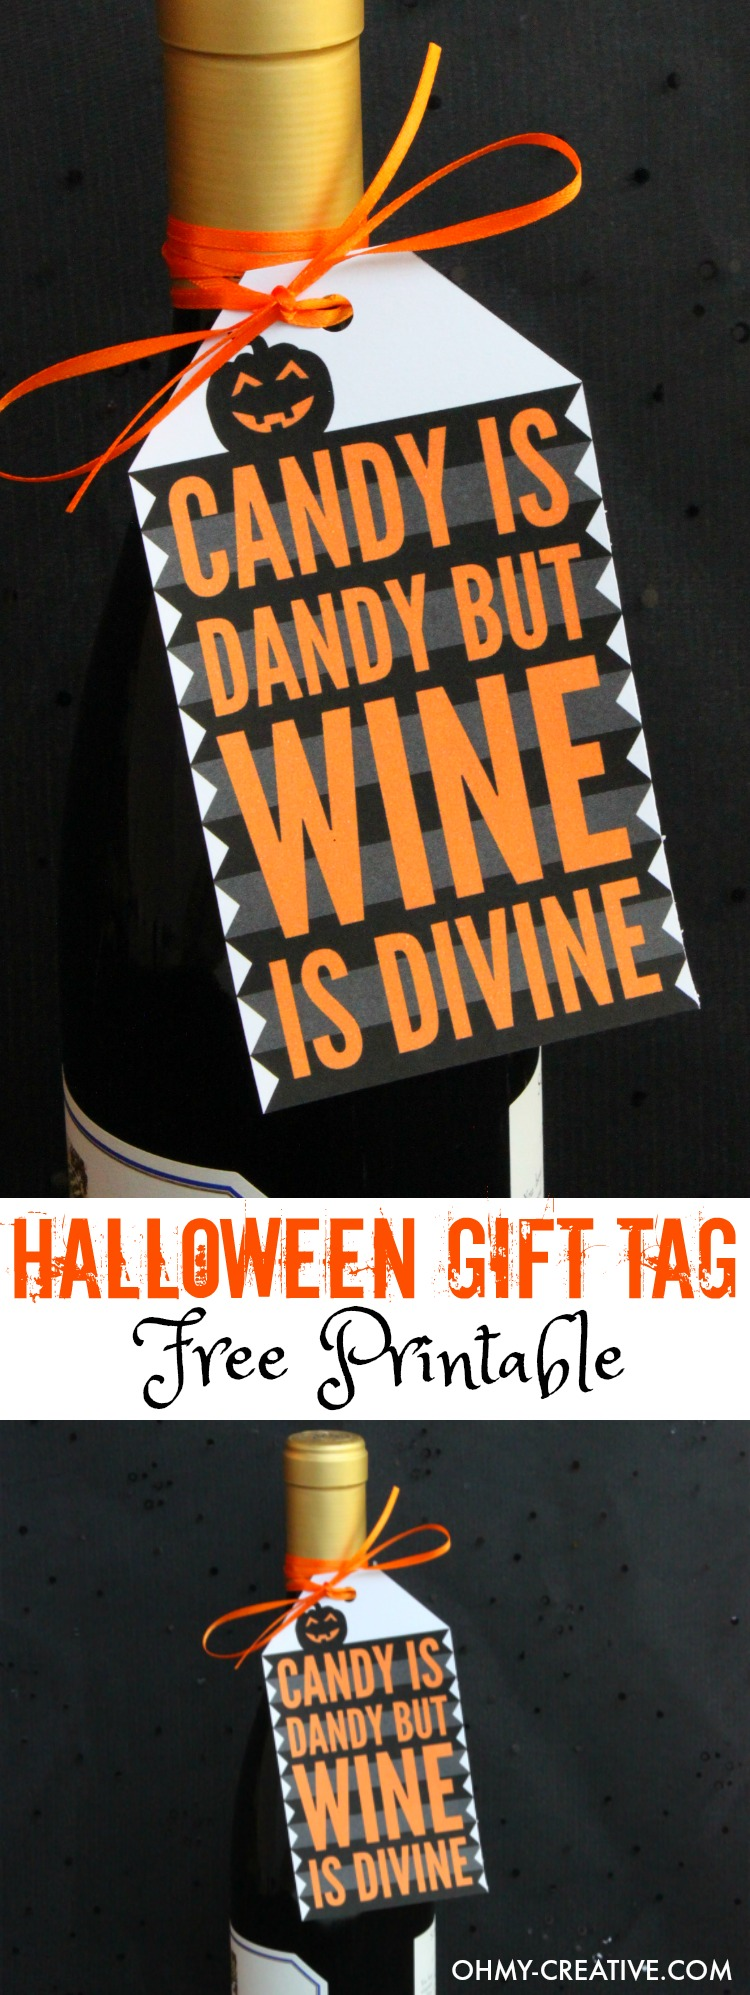 Print out this Halloween Gift Tag Free Printable for your Halloween Party Hostess gift! Great for wine lovers! Cute Halloween phrase - Candy is Dandy but wine is Divine! | OHMY-CREATIVE.COM